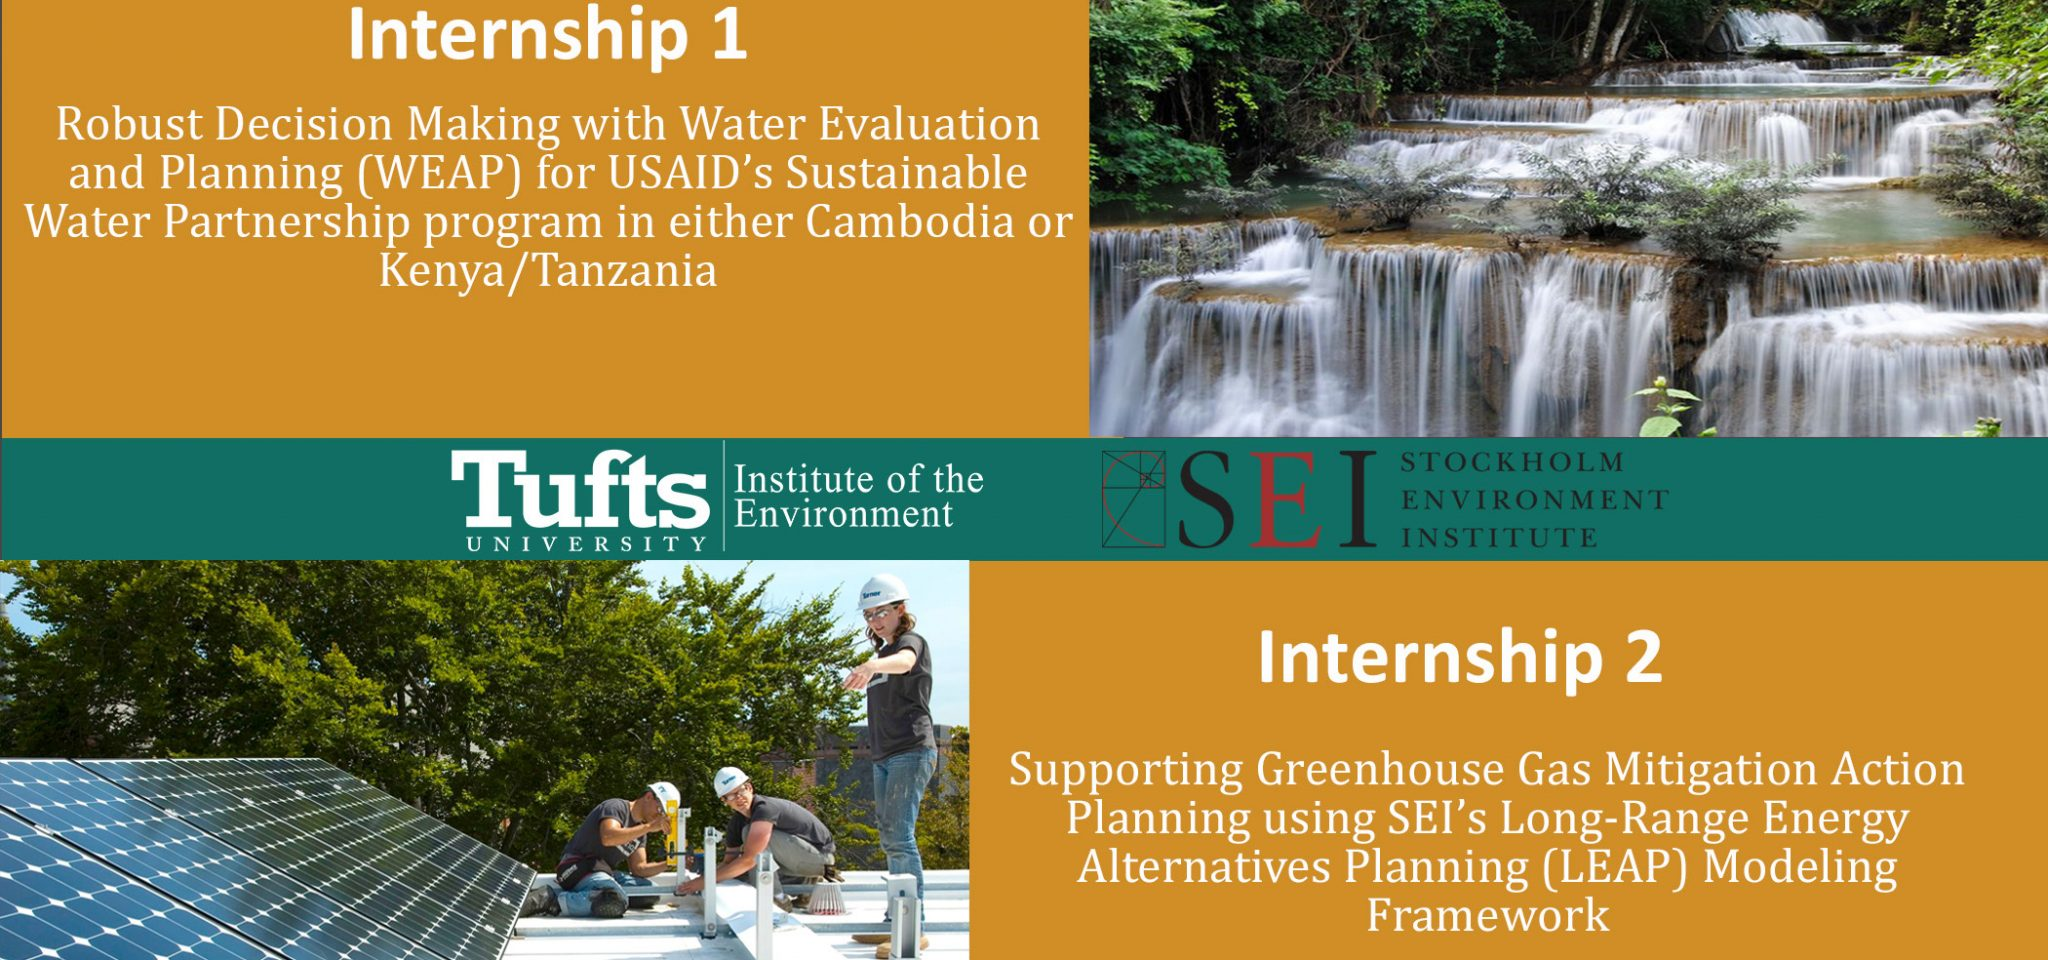 A week left to apply for TIE-SEI internships!